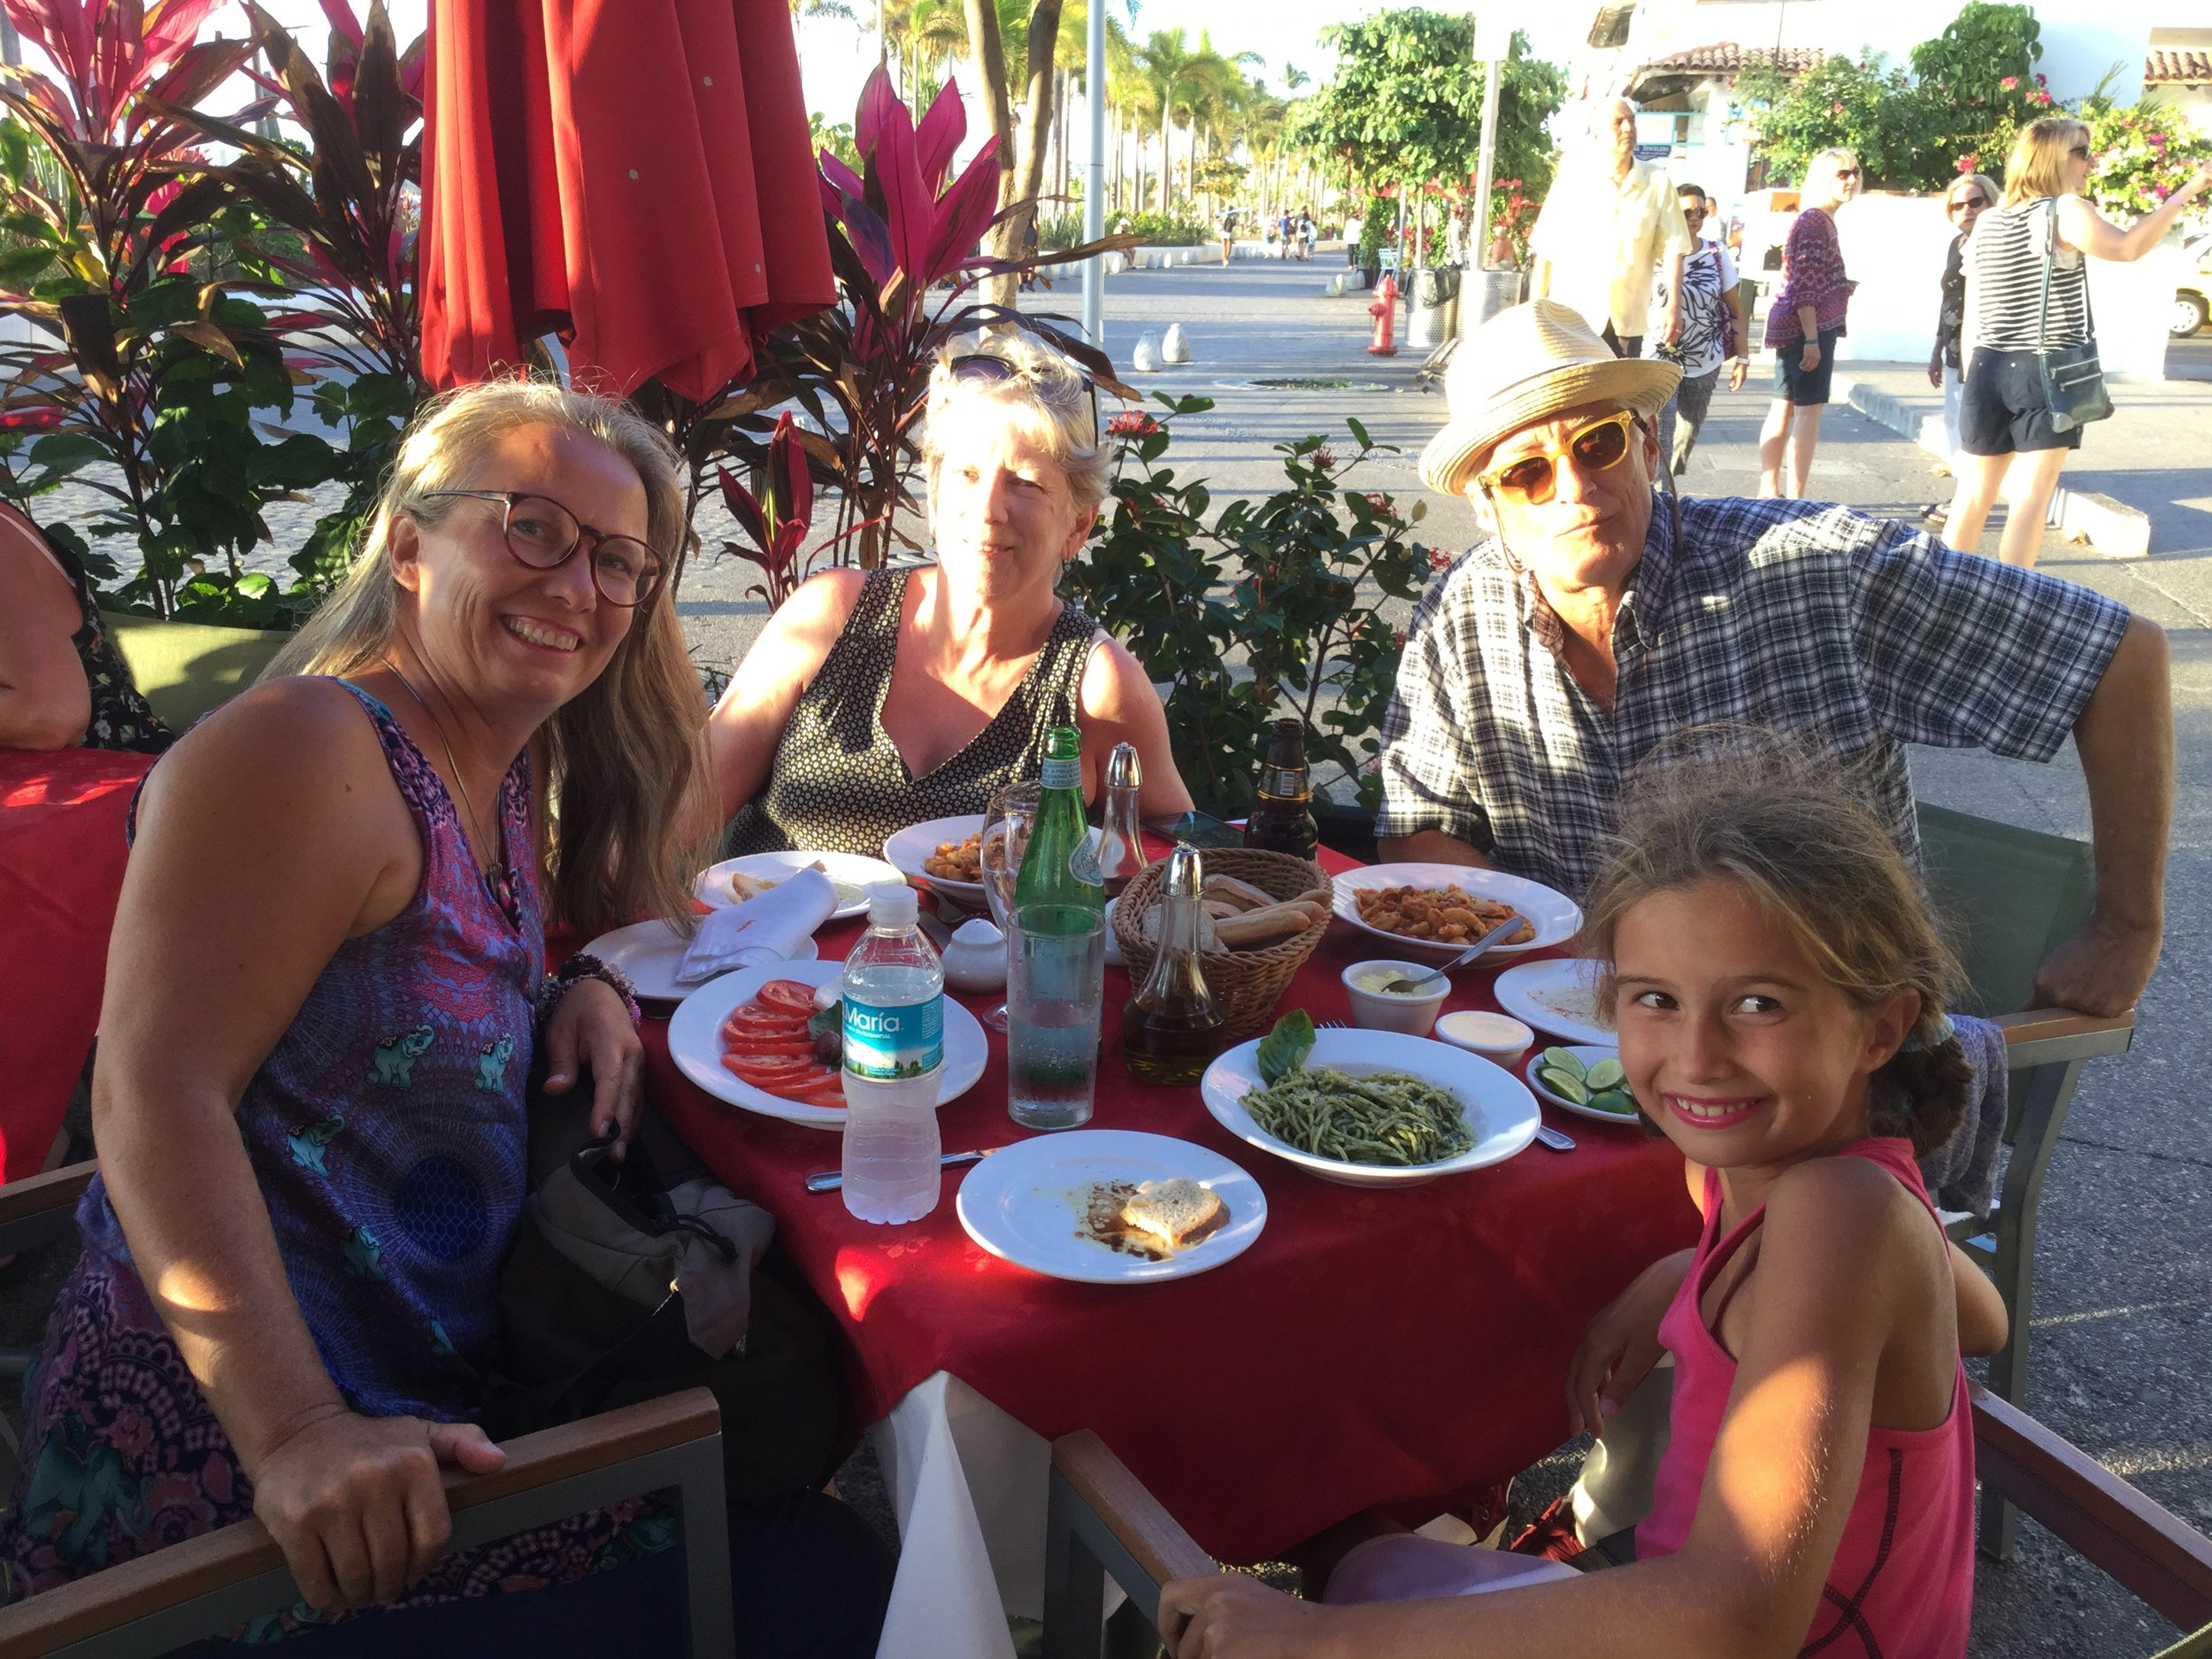 And here we are on the Malecon eating very very good Italian food. (Yes we have had Mexican food almost every day.) It was time for pasta, and dessert was off camera...